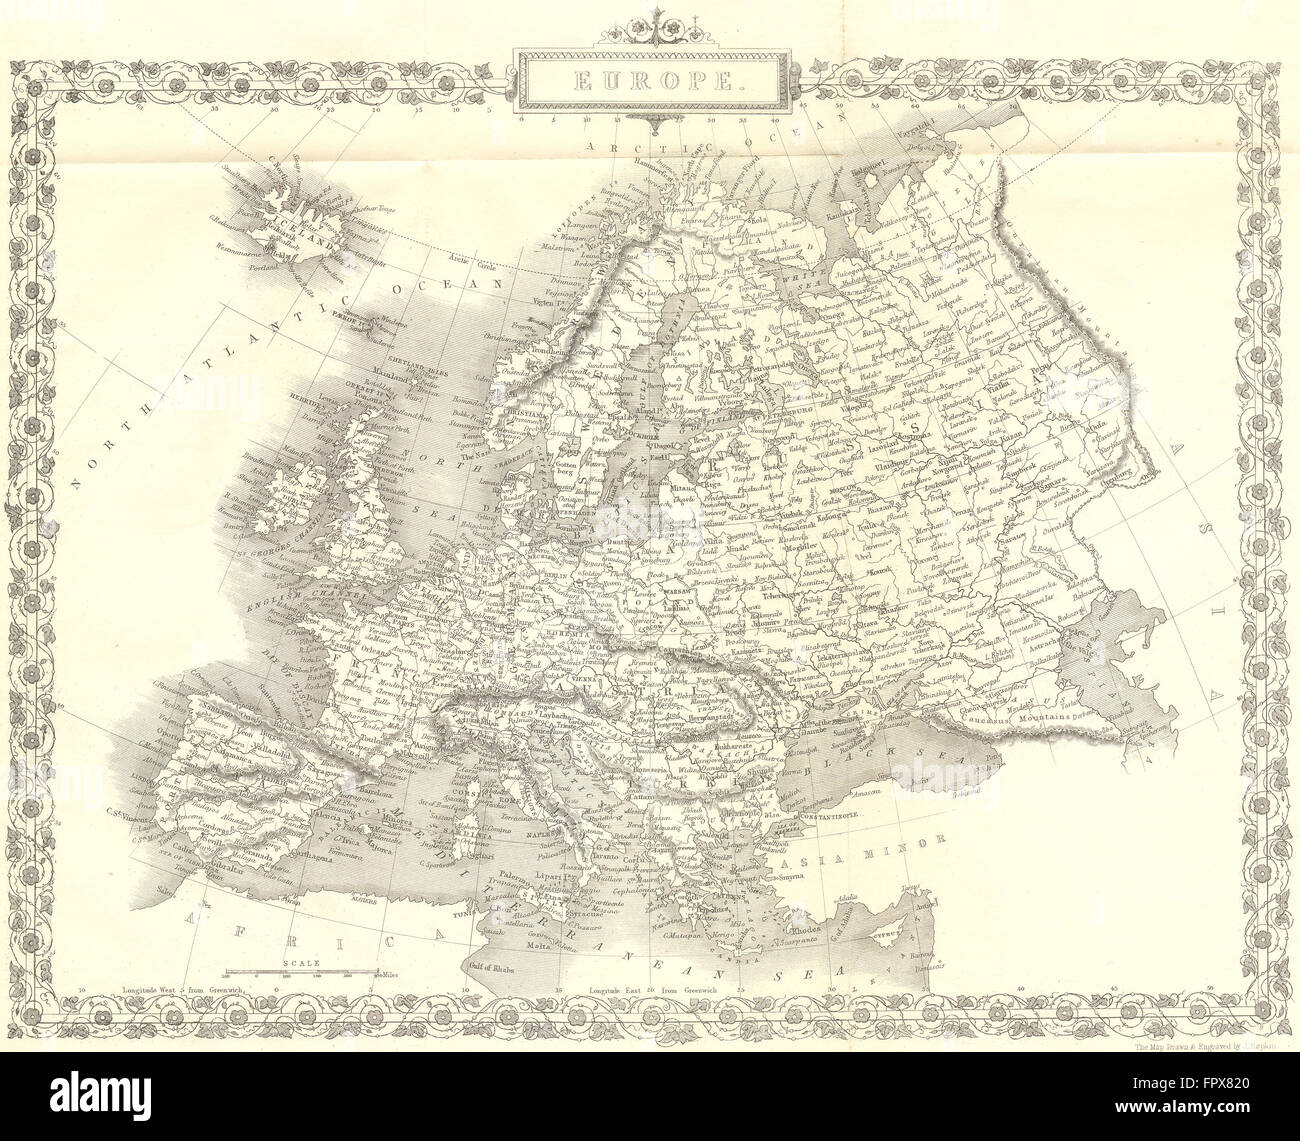 EUROPE: Continent: Rapkin, 1850 antique map - Stock Image